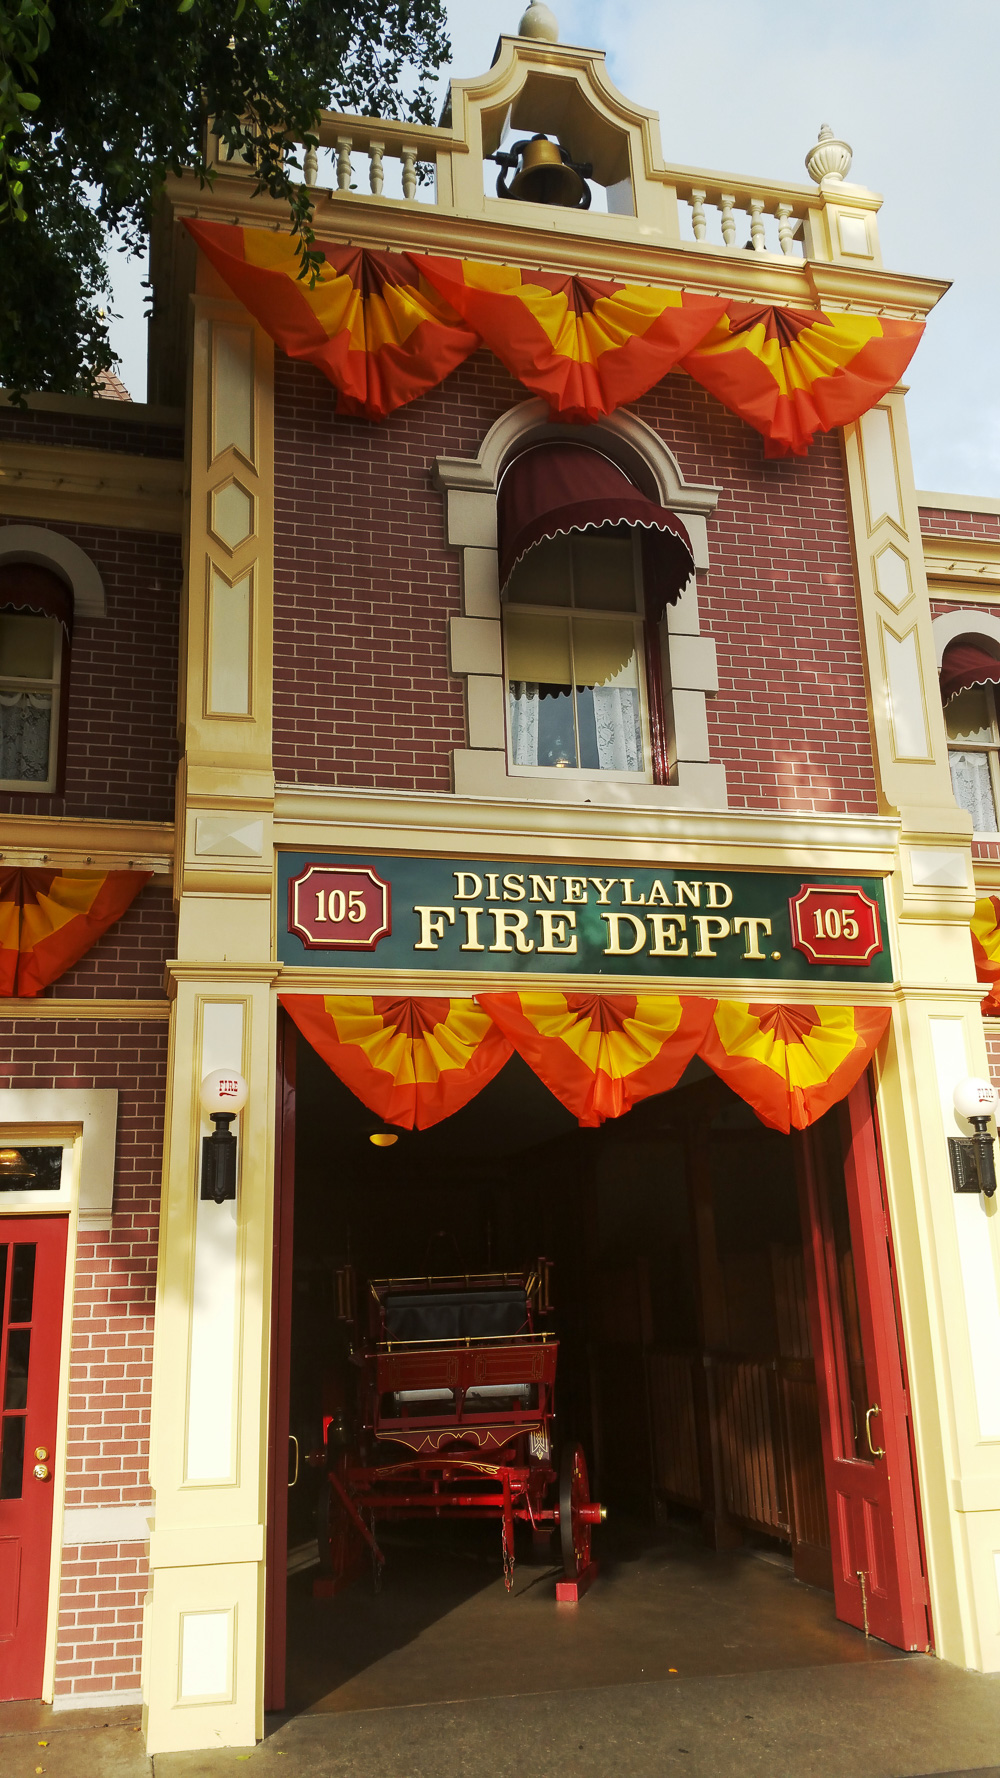 Disneyland Fire department building where Walt's office was located